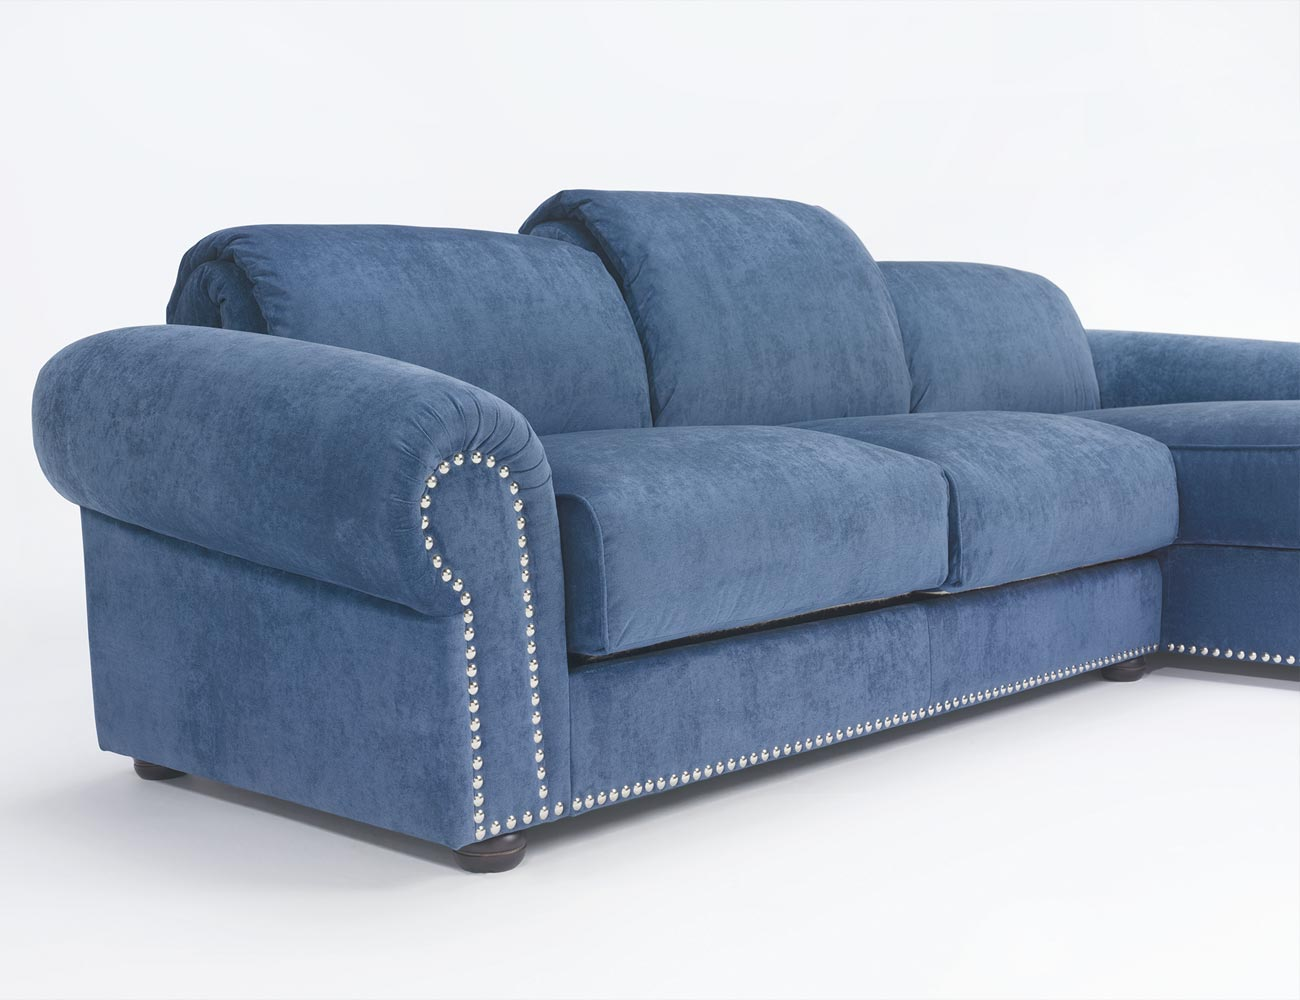 Sofa chaiselongue gran lujo decorativo azul 122